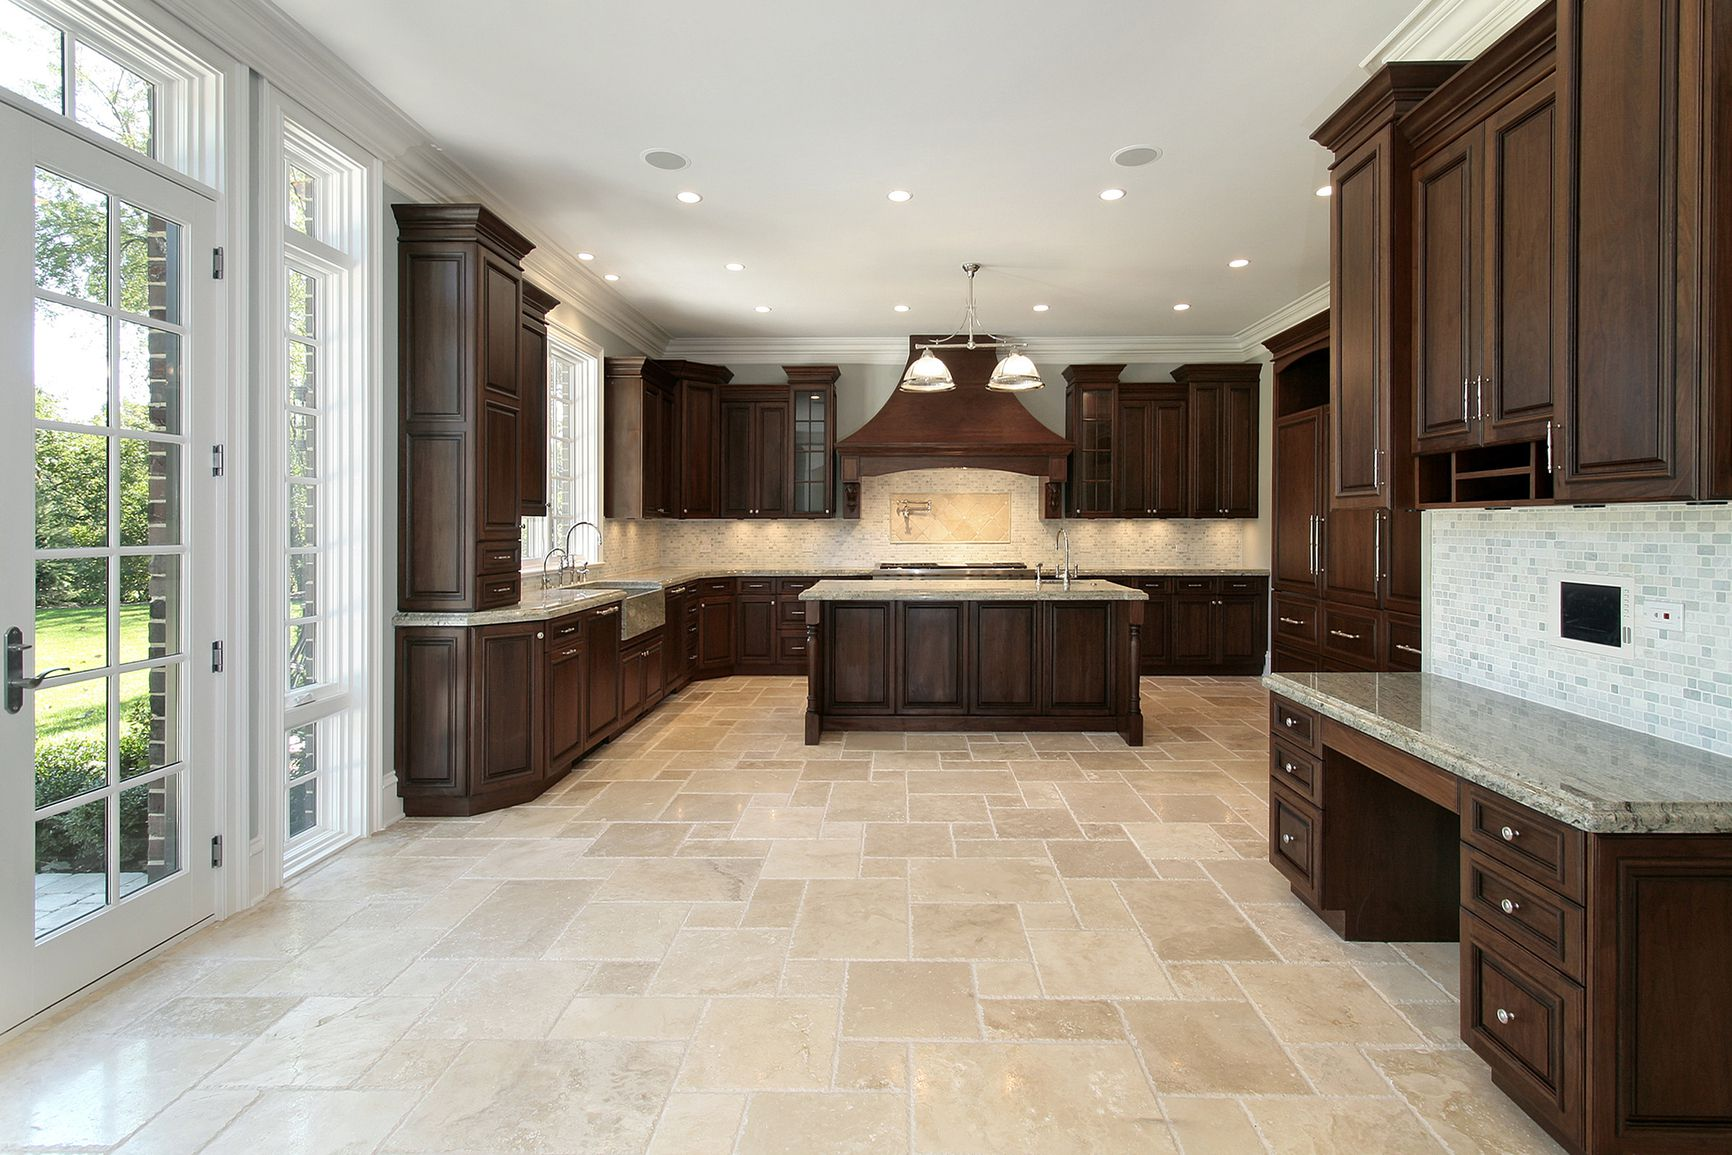 Ordinaire Amazing Kitchen Decortaion Ideas Using Best Tile Floring Ideas Also Wooden  Cabinet. Flooring With Parquette